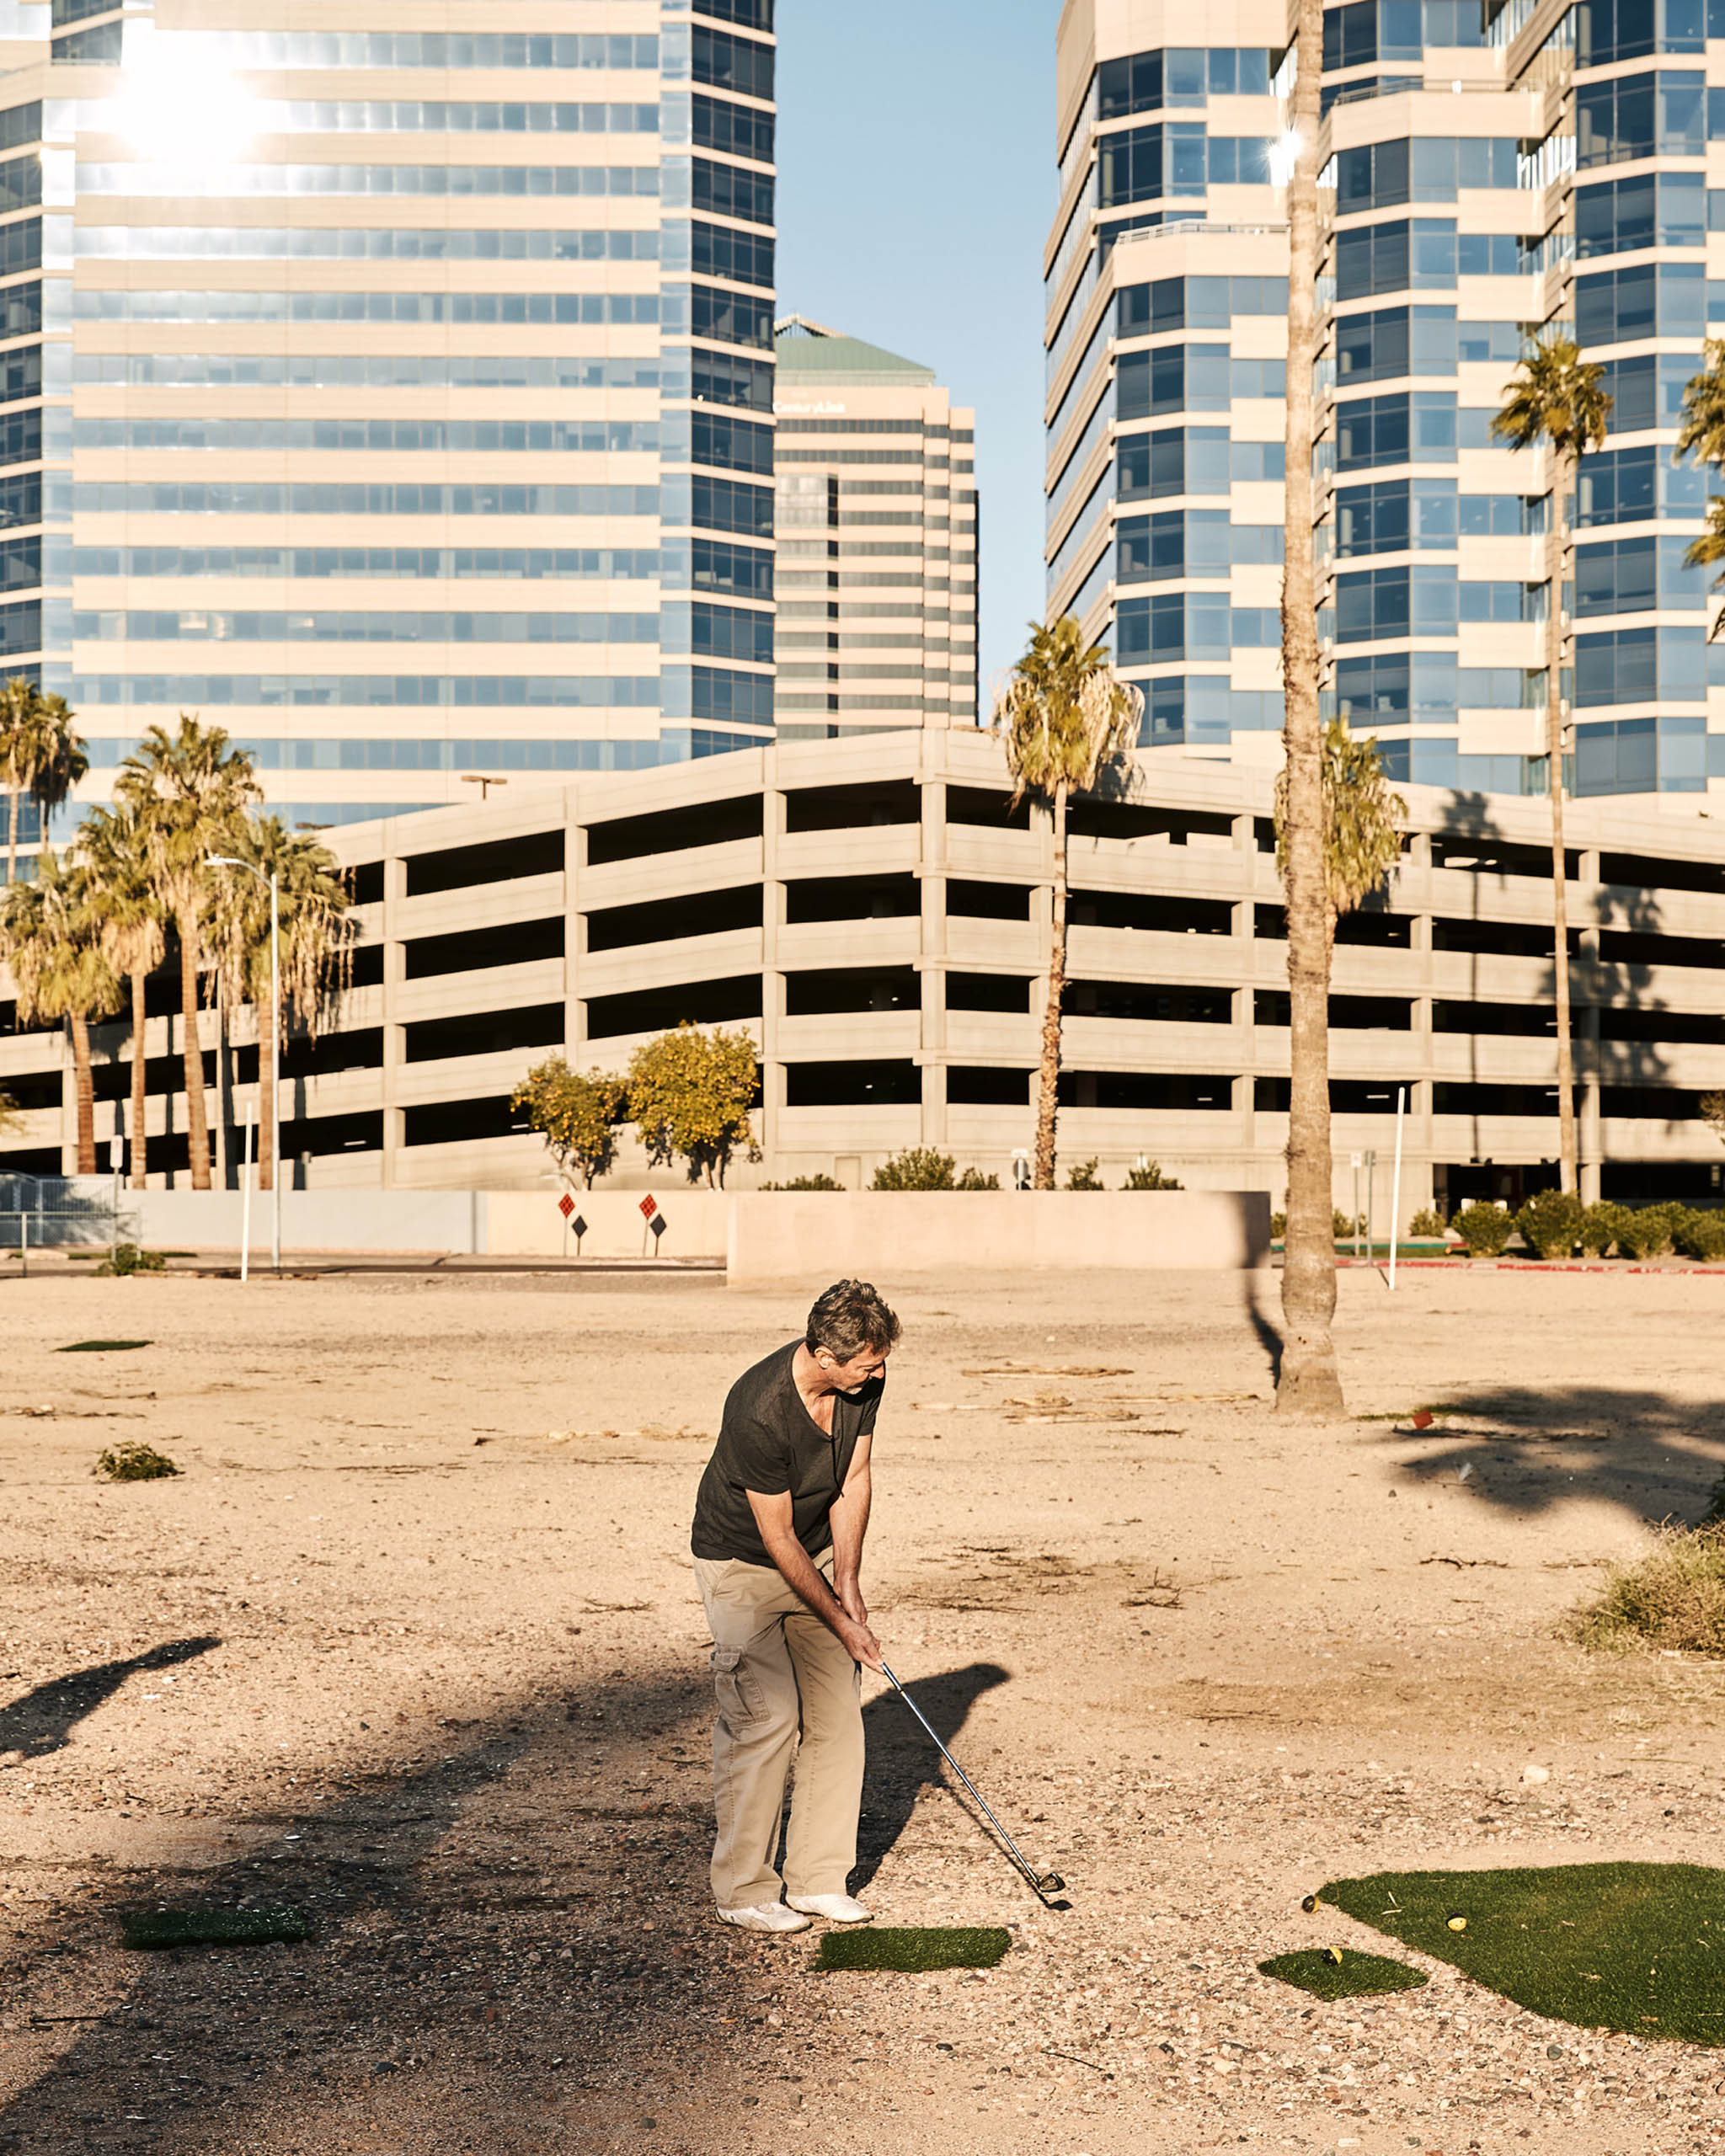 Terreno Baldío Country Club members live a golf life on the run. They pour their creative energies into each course, but know that the gravel playgrounds are never permanent.